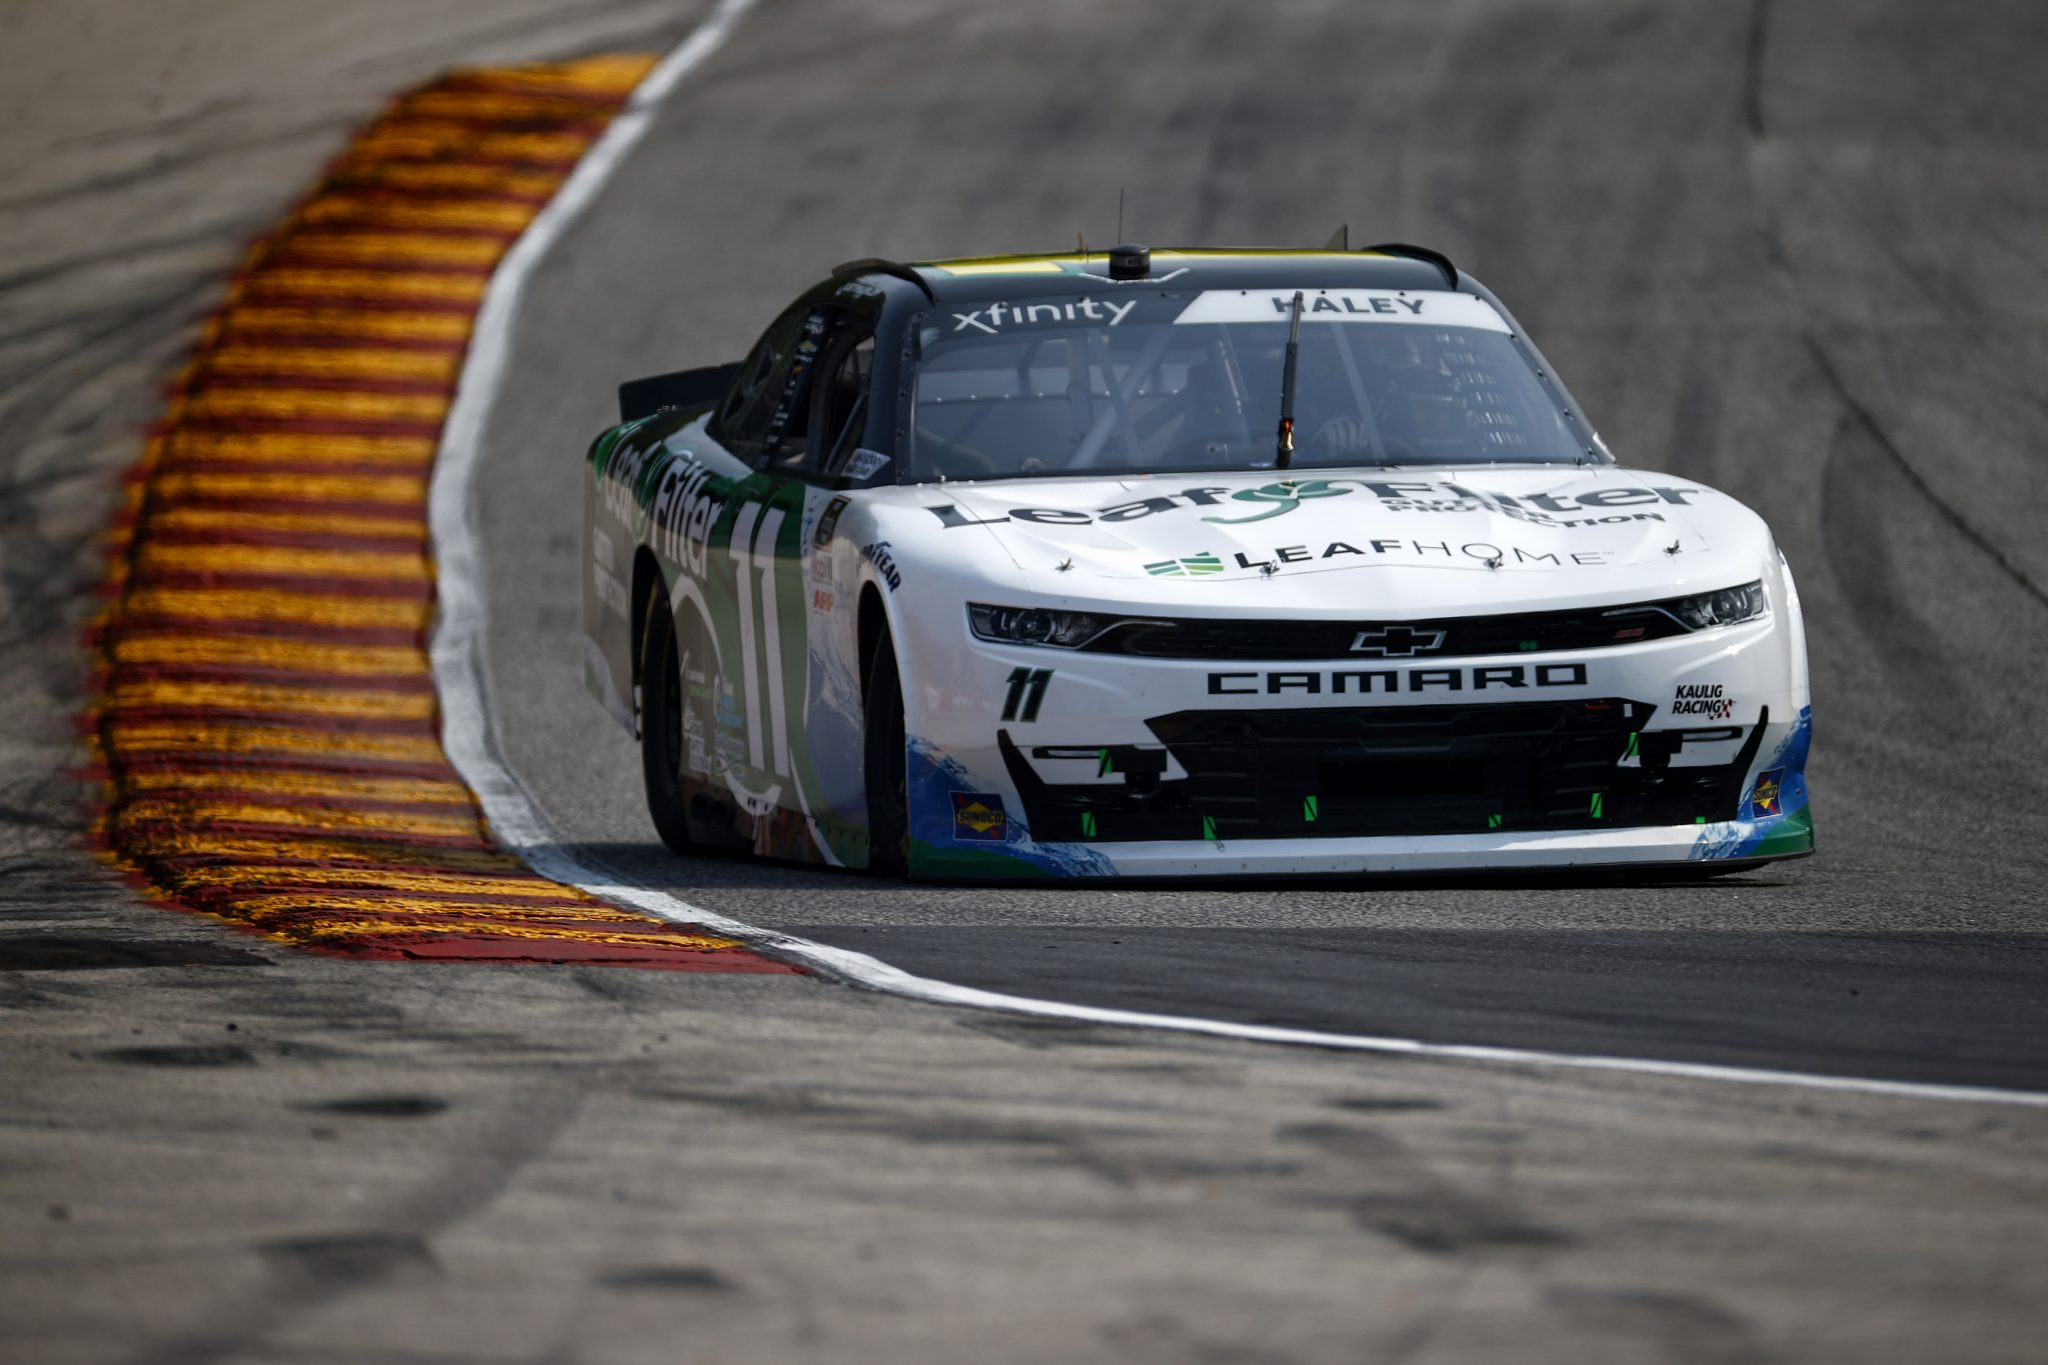 ELKHART LAKE, WISCONSIN - JULY 02: Justin Haley, driver of the #11 LeafFilter Gutter Protection Chevrolet, drives during practice for the NASCAR Xfinity Series Henry 180 at Road America on July 02, 2021 in Elkhart Lake, Wisconsin. (Photo by Jared C. Tilton/Getty Images) | Getty Images